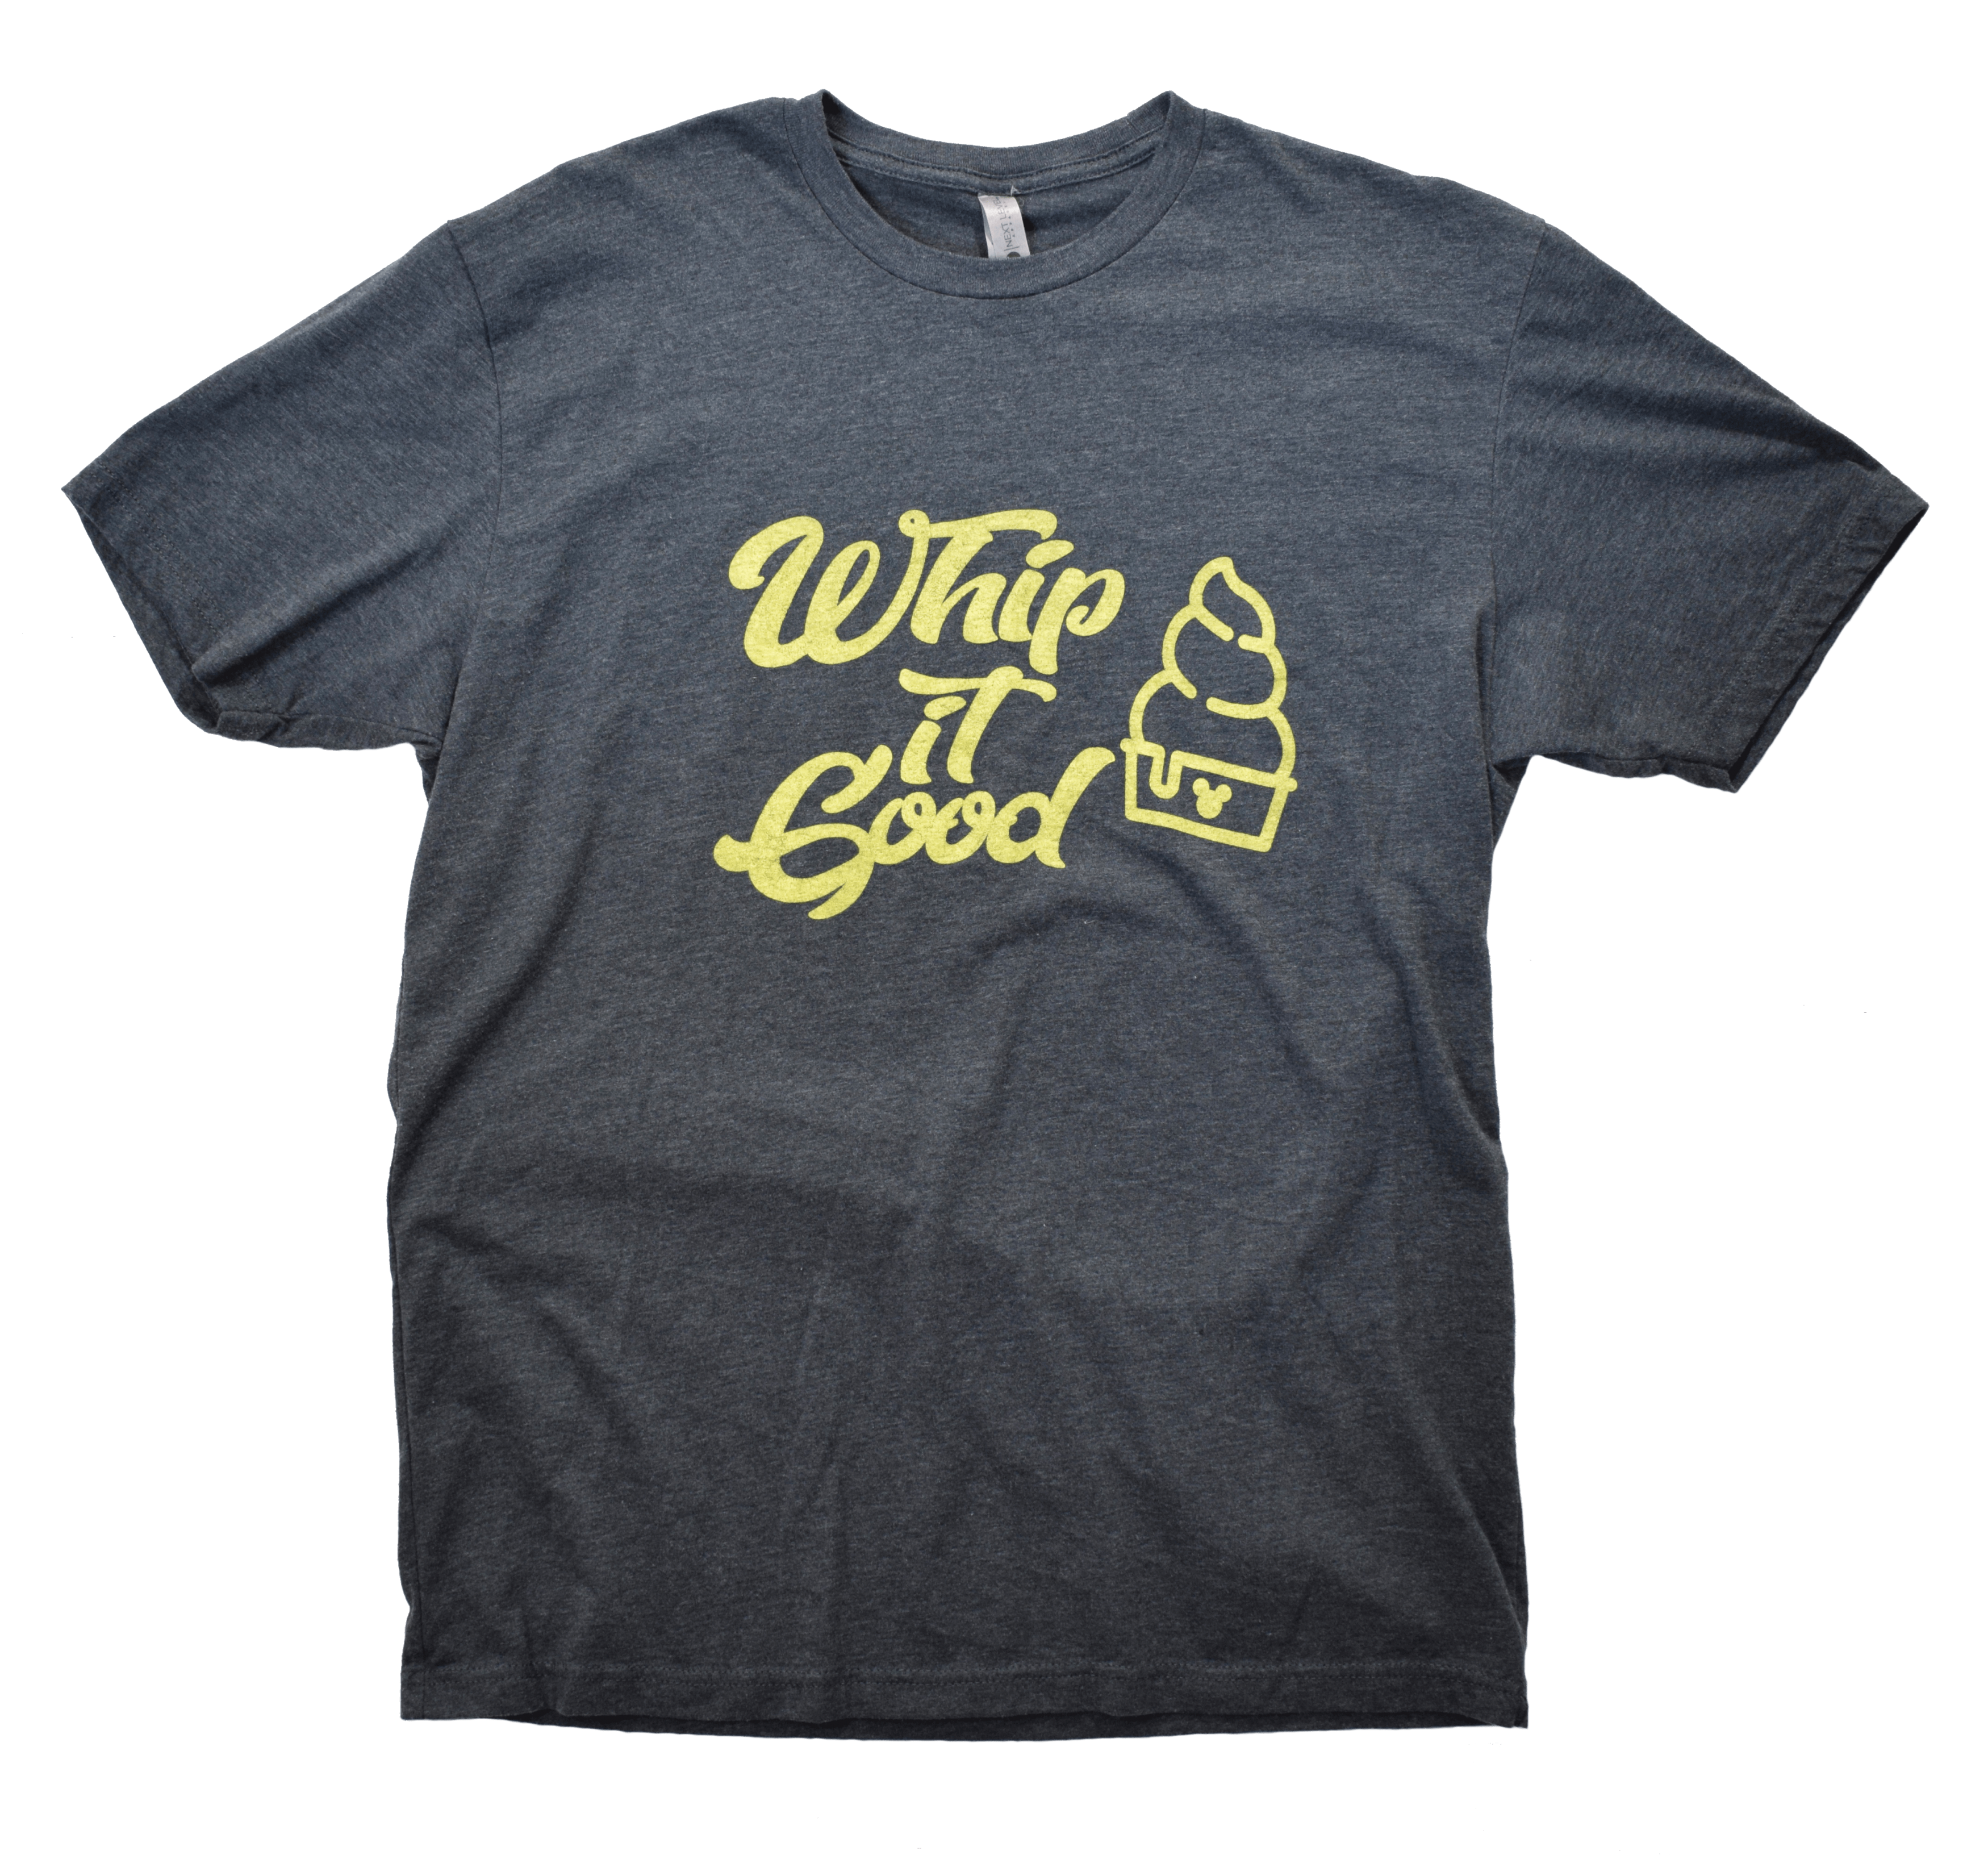 Whip it good png. Tee capture the magic